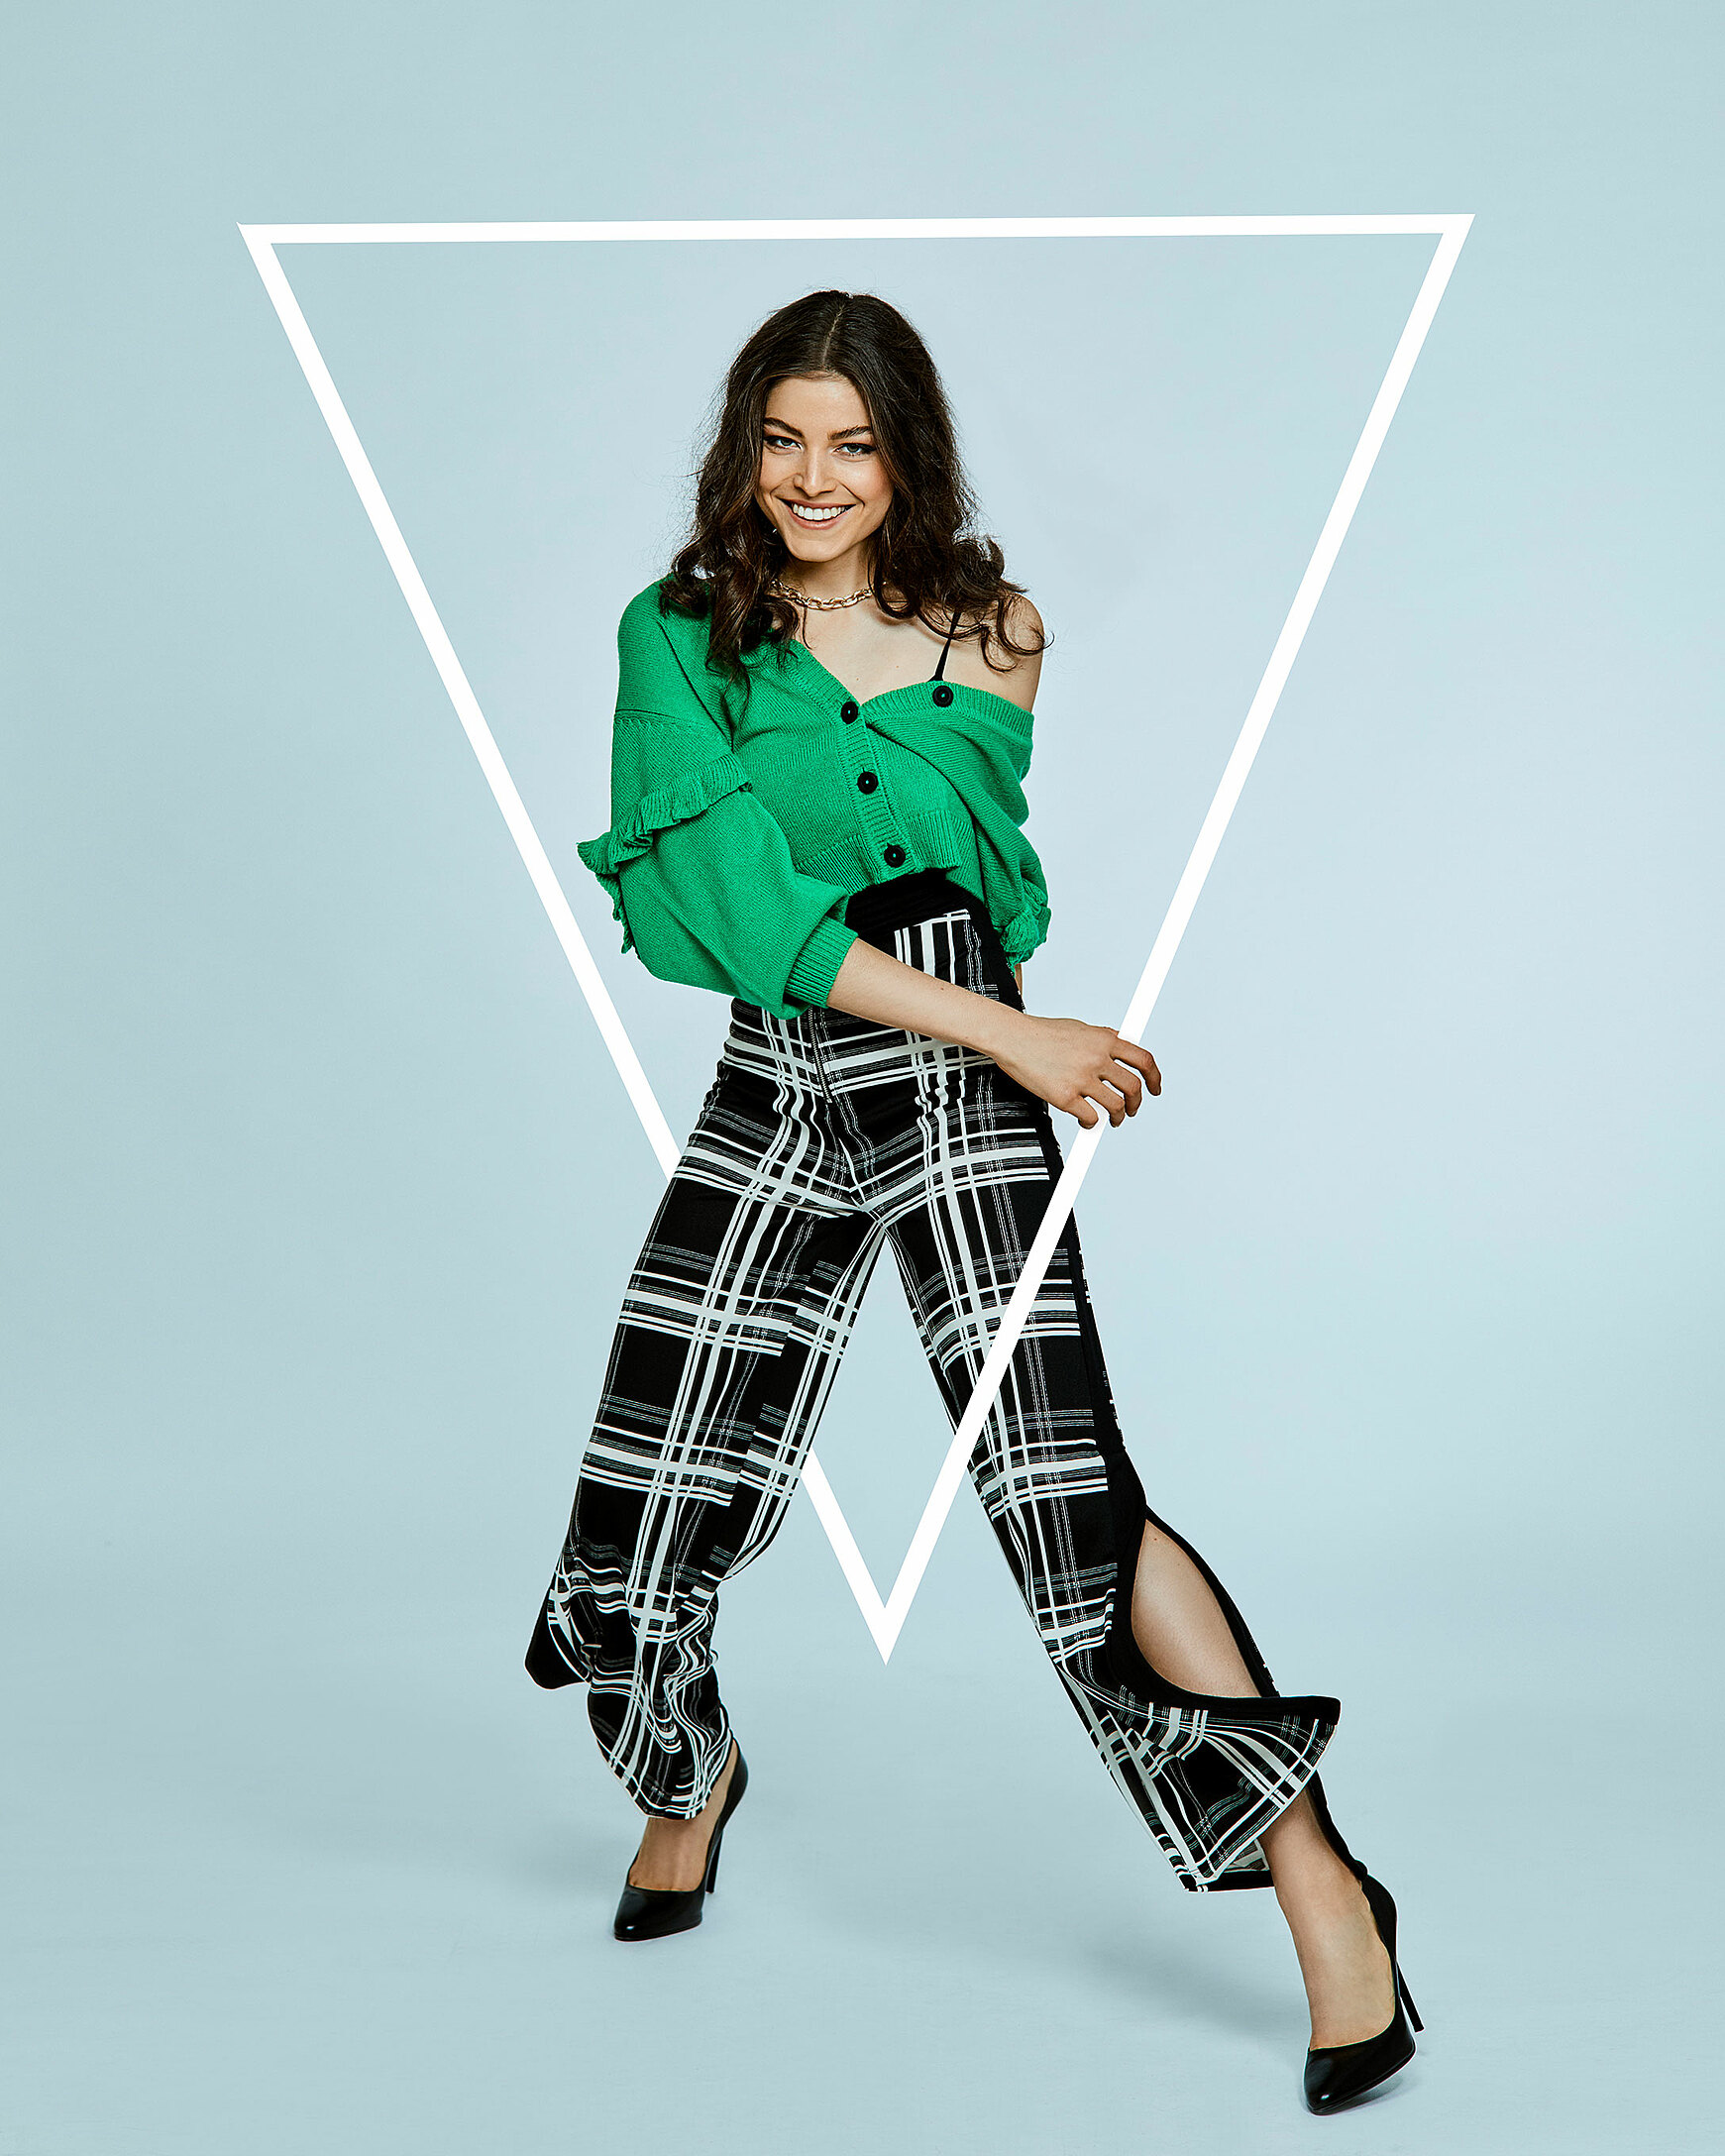 A brown hair model with a green casual jacket and pattern trousers steps through a triangle.